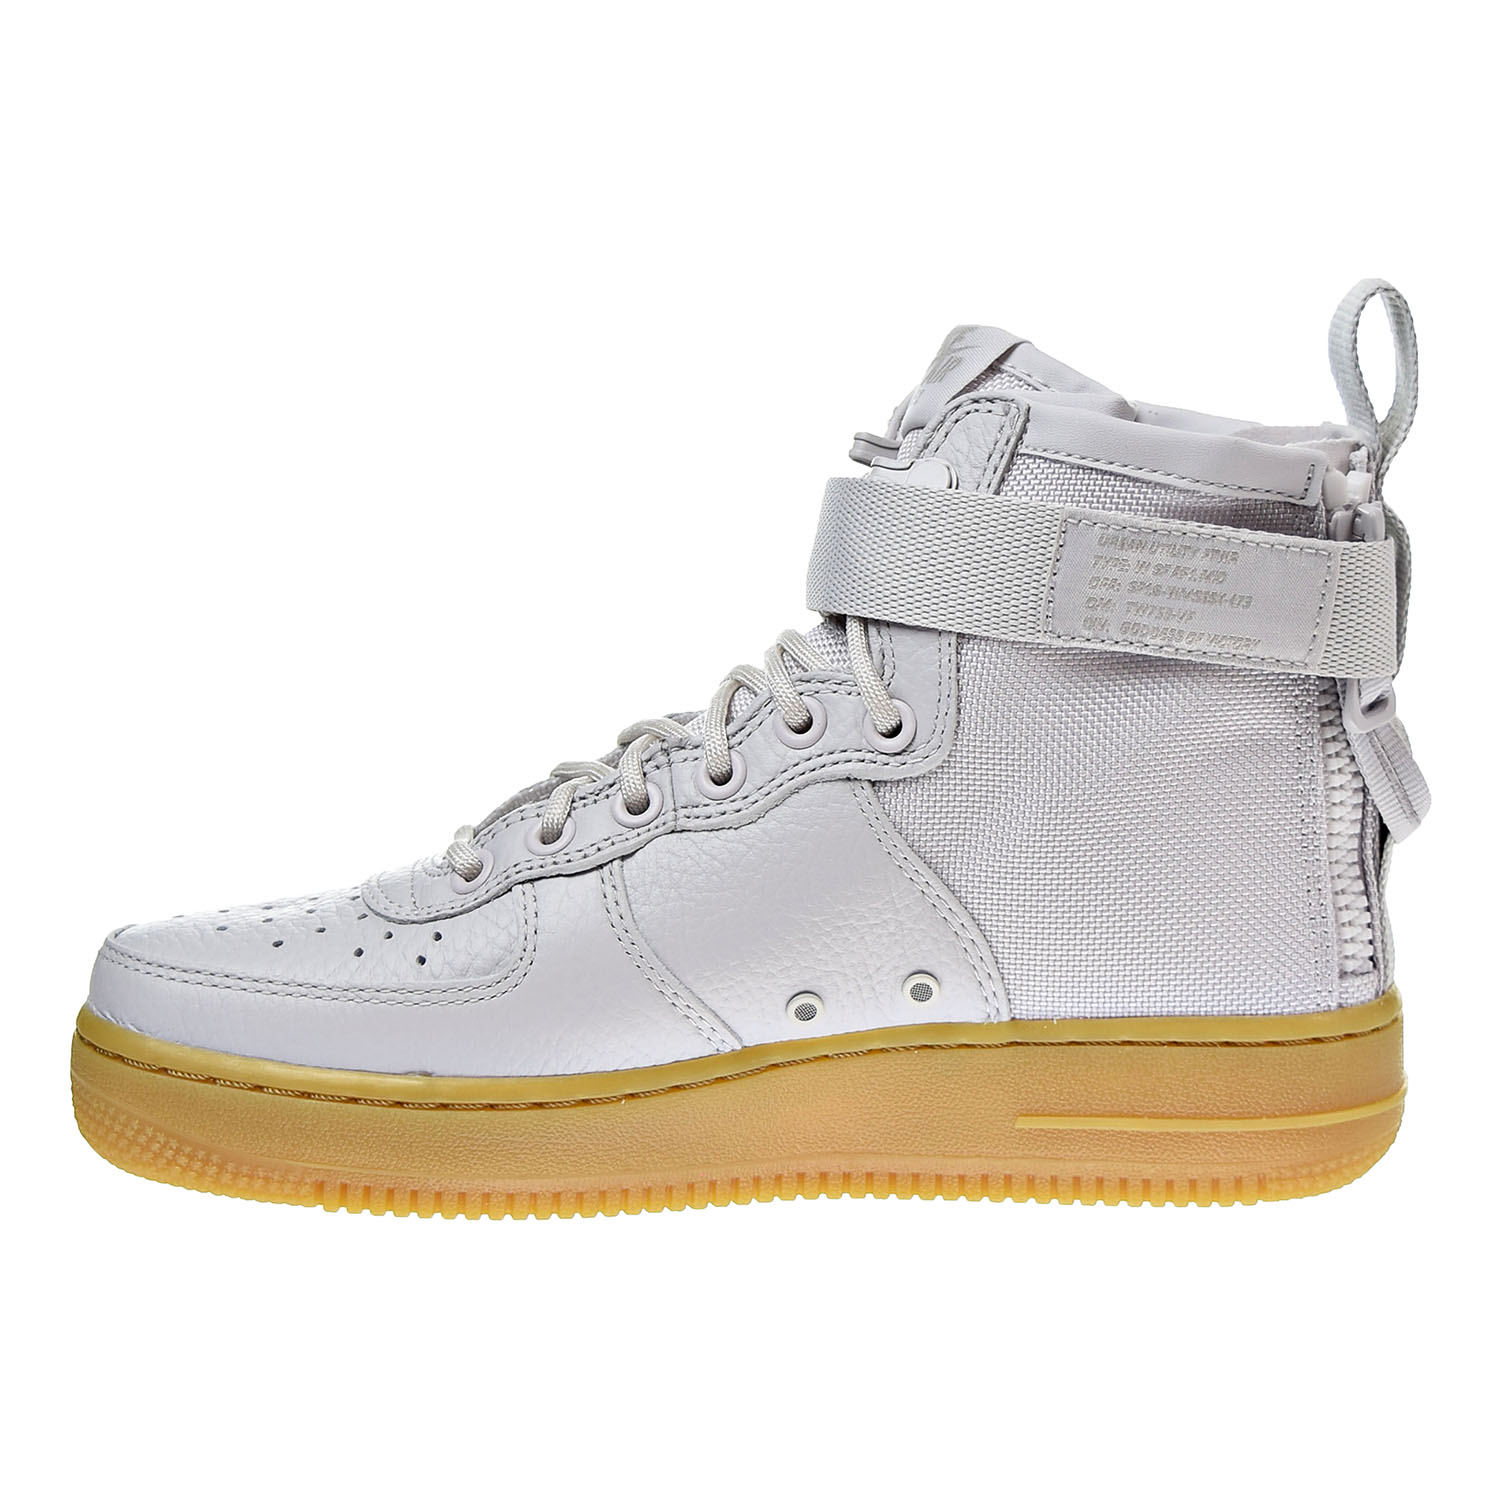 Details about Nike SF Air Force 1 Mid Women's Shoes Vast Grey AA3966 005